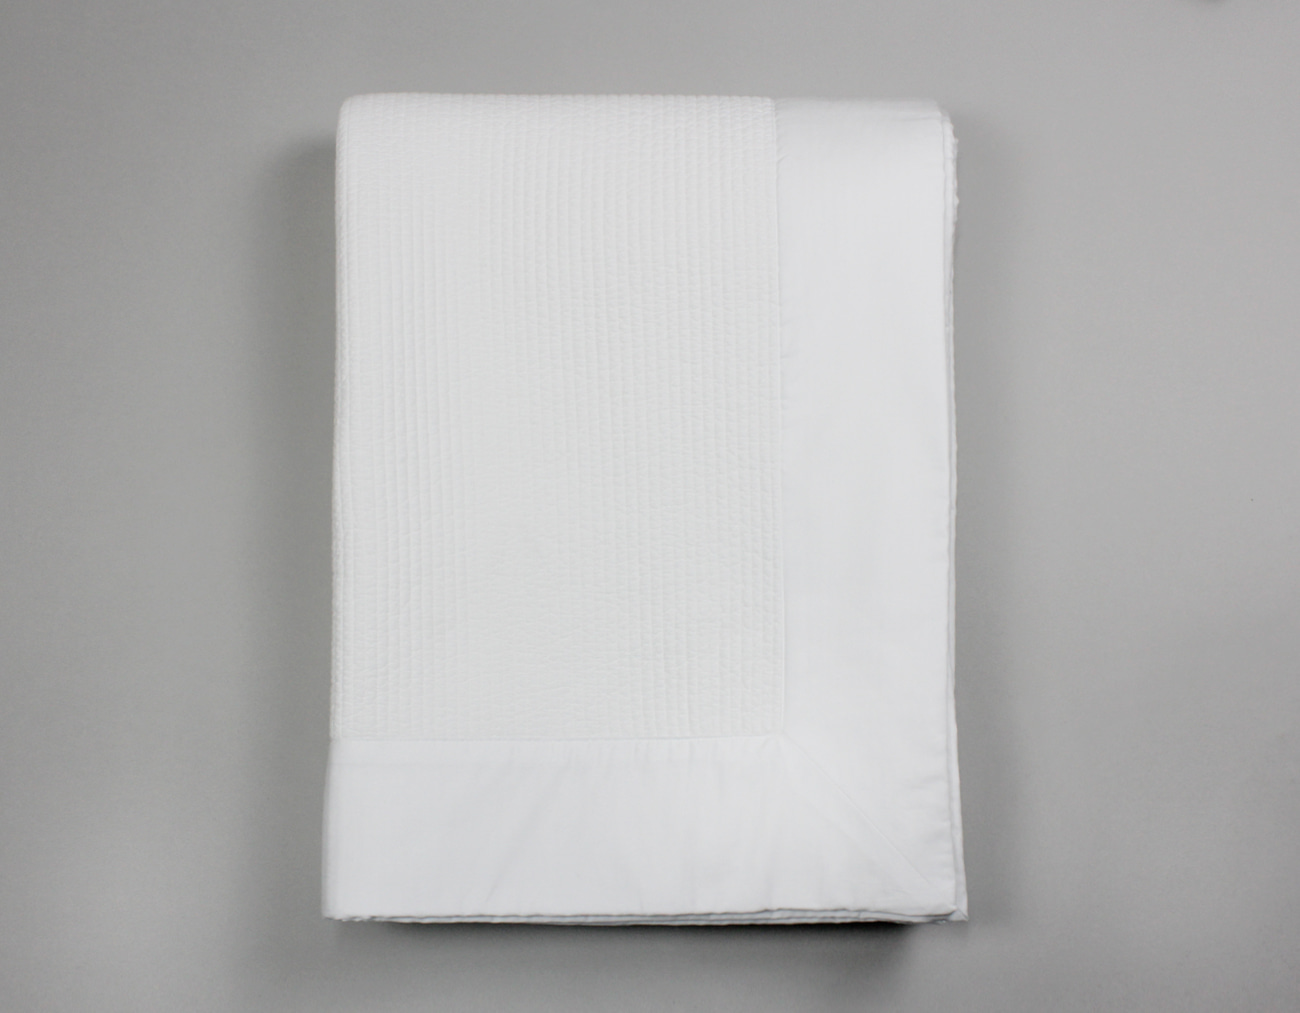 COTTON QUILTING MATTRESS PAD - WHITE